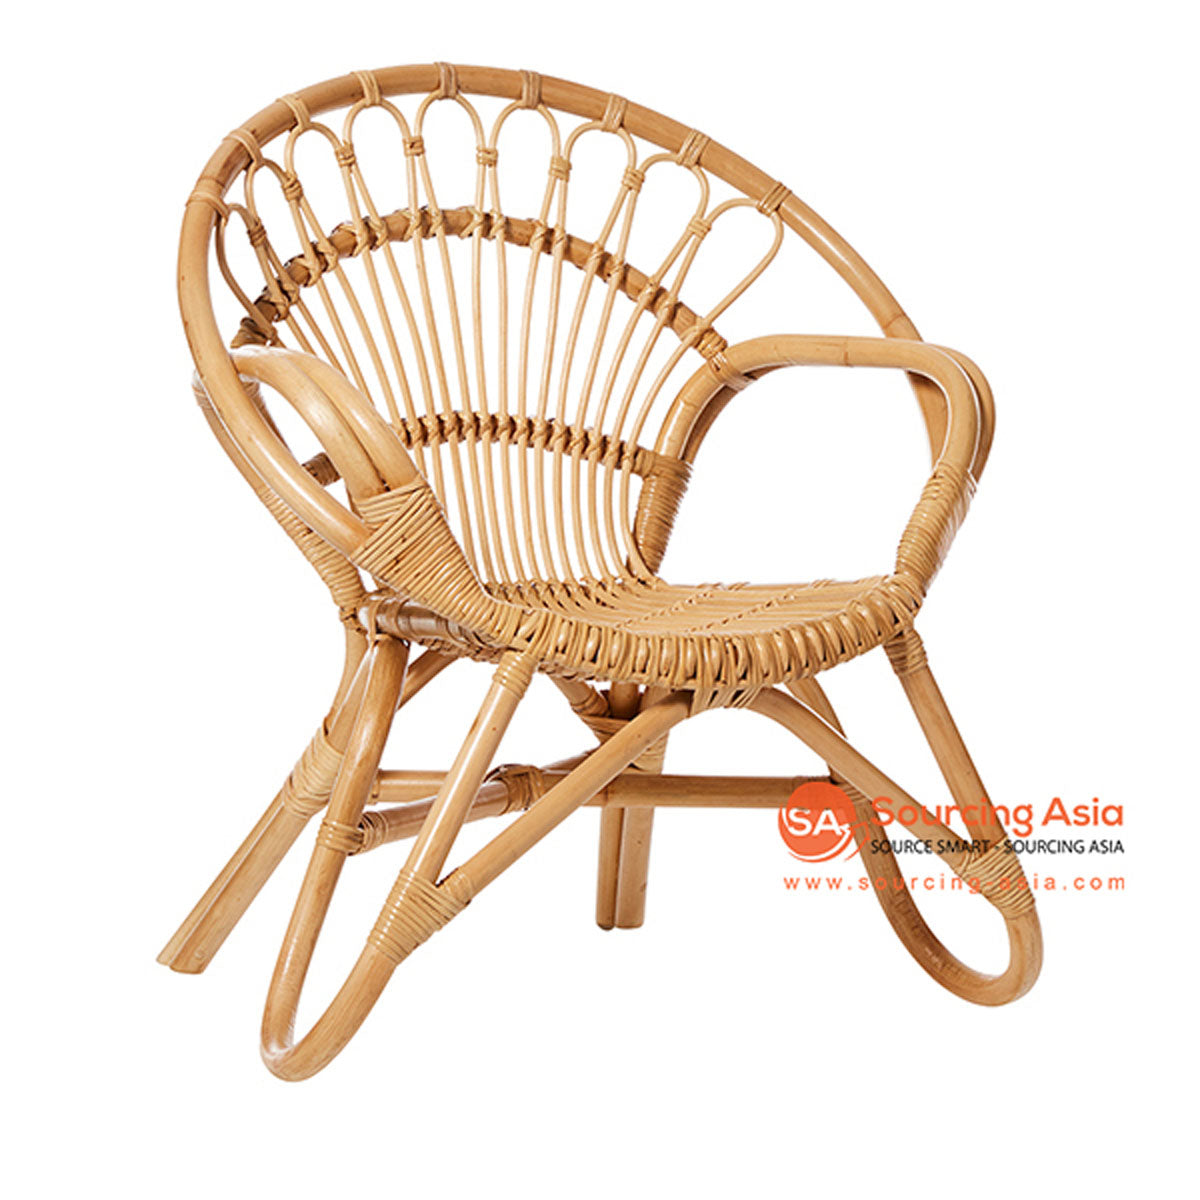 SHL121 NATURAL RATTAN DECORATIVE UPHOLSTERED CHAIR